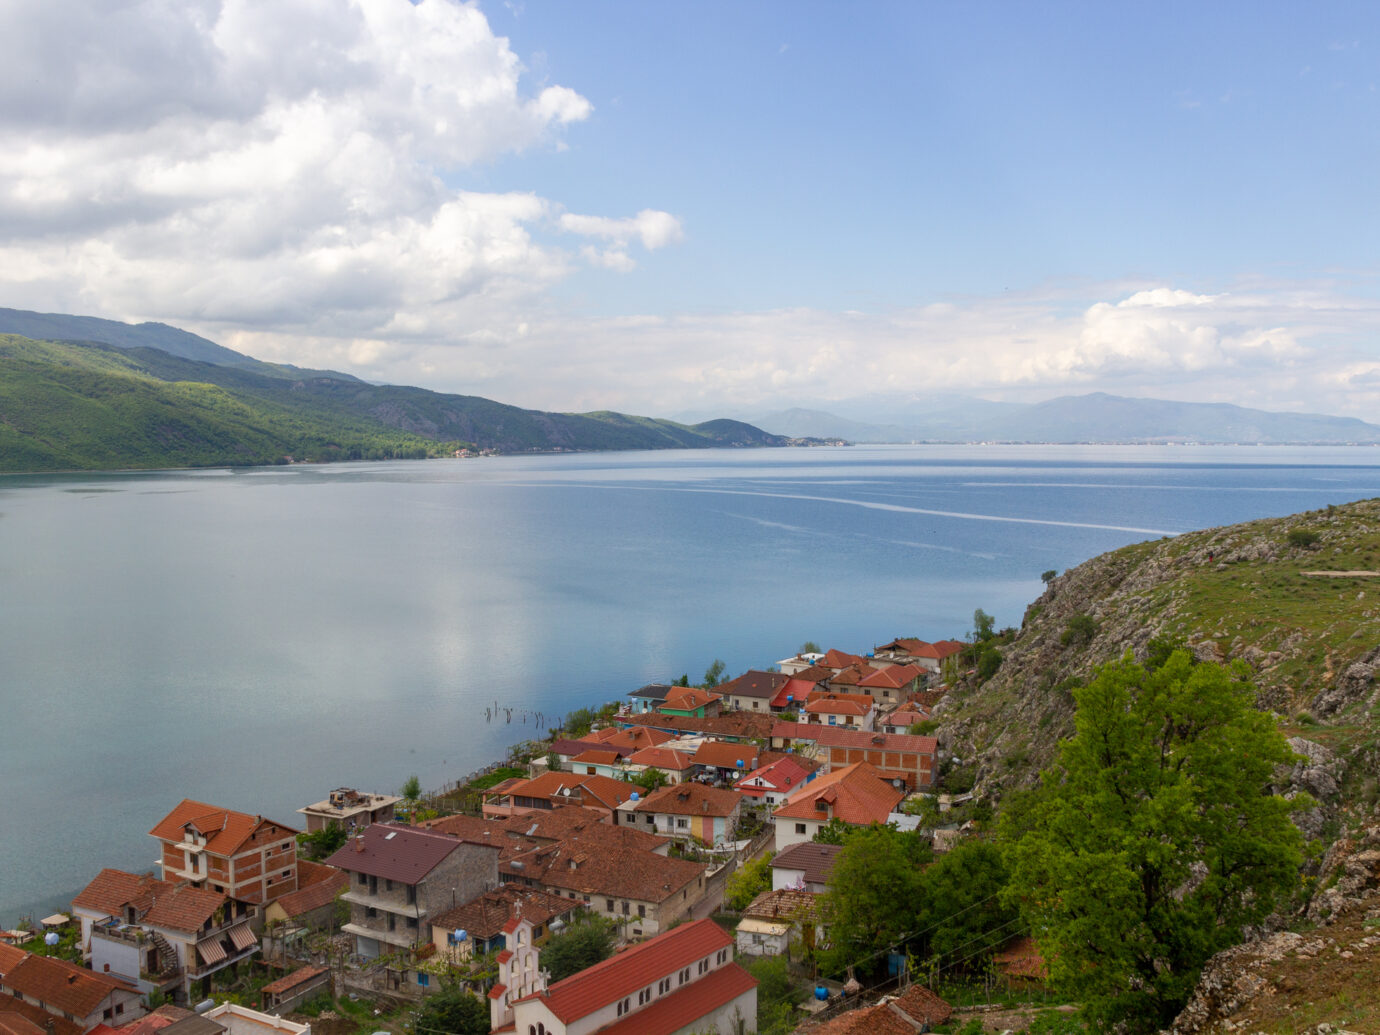 The Lake Ohrid photo taken from Albania near the border with Macedonia. Very clean and blue lake